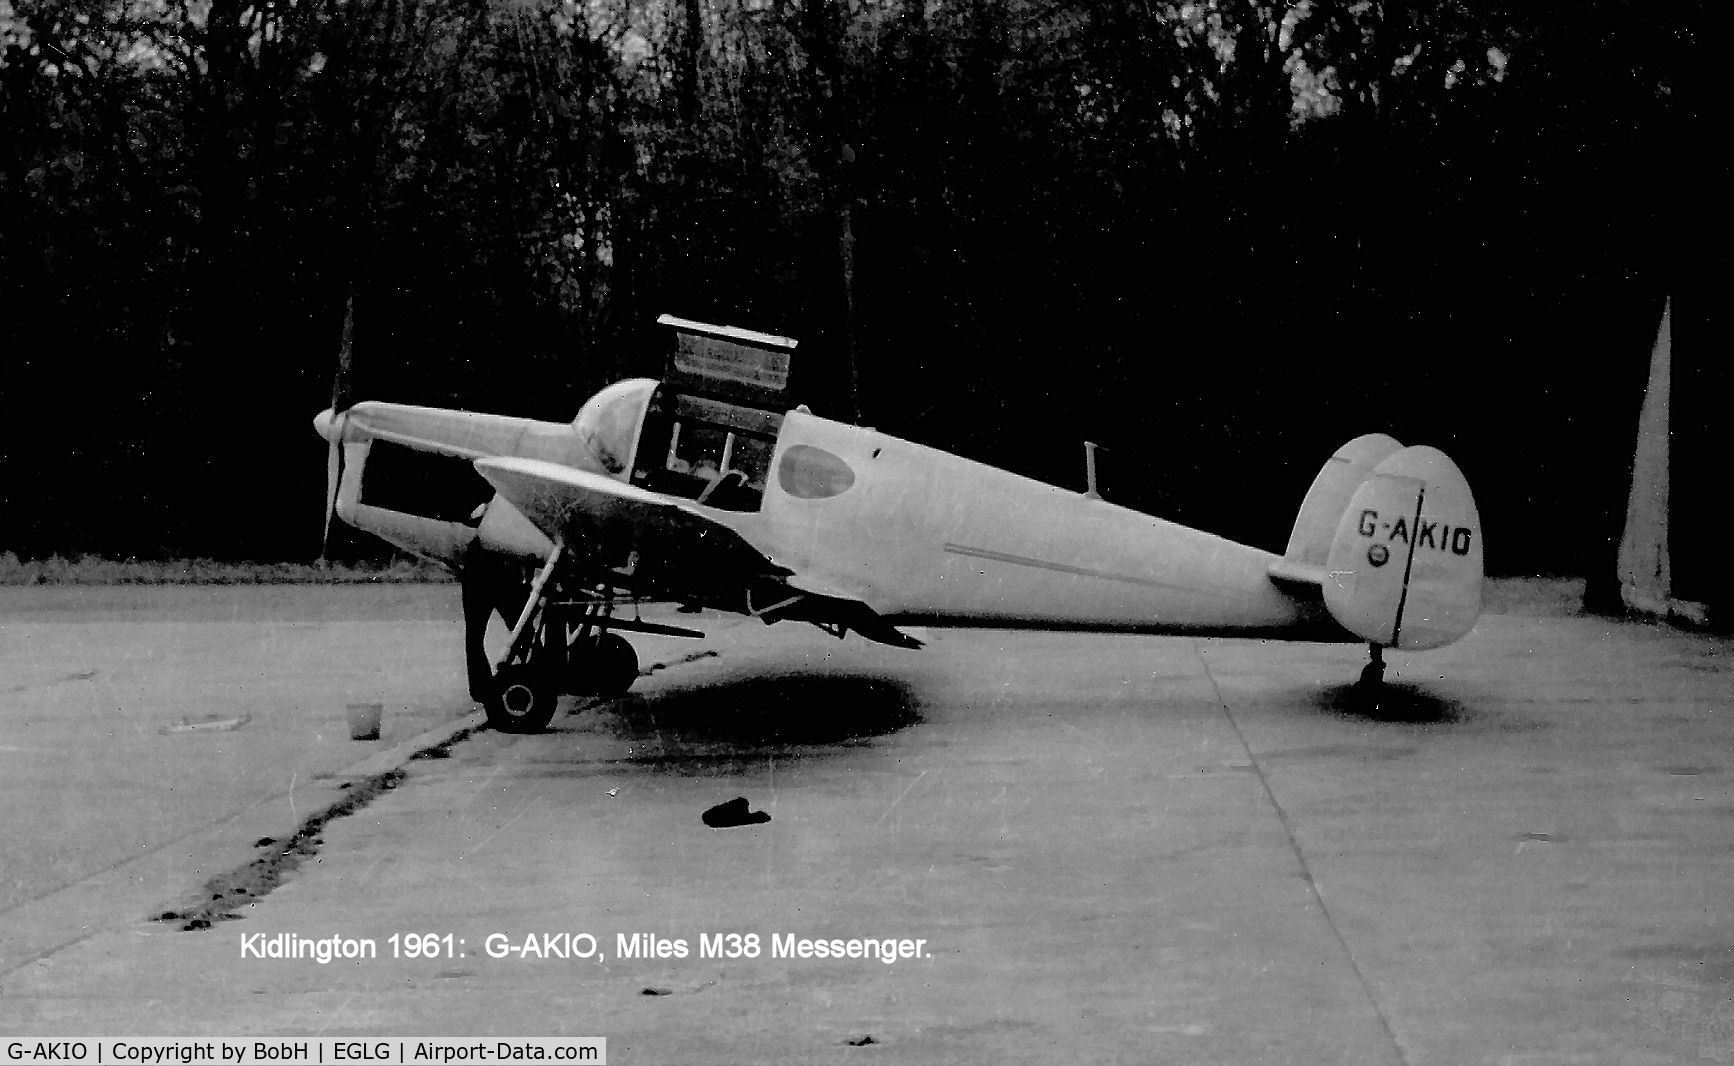 G-AKIO, 1947 Miles M38 Messenger 2A C/N 6729, Taken in April 1961. At Panshanger, Hertfordshire, not as stated on the picture.